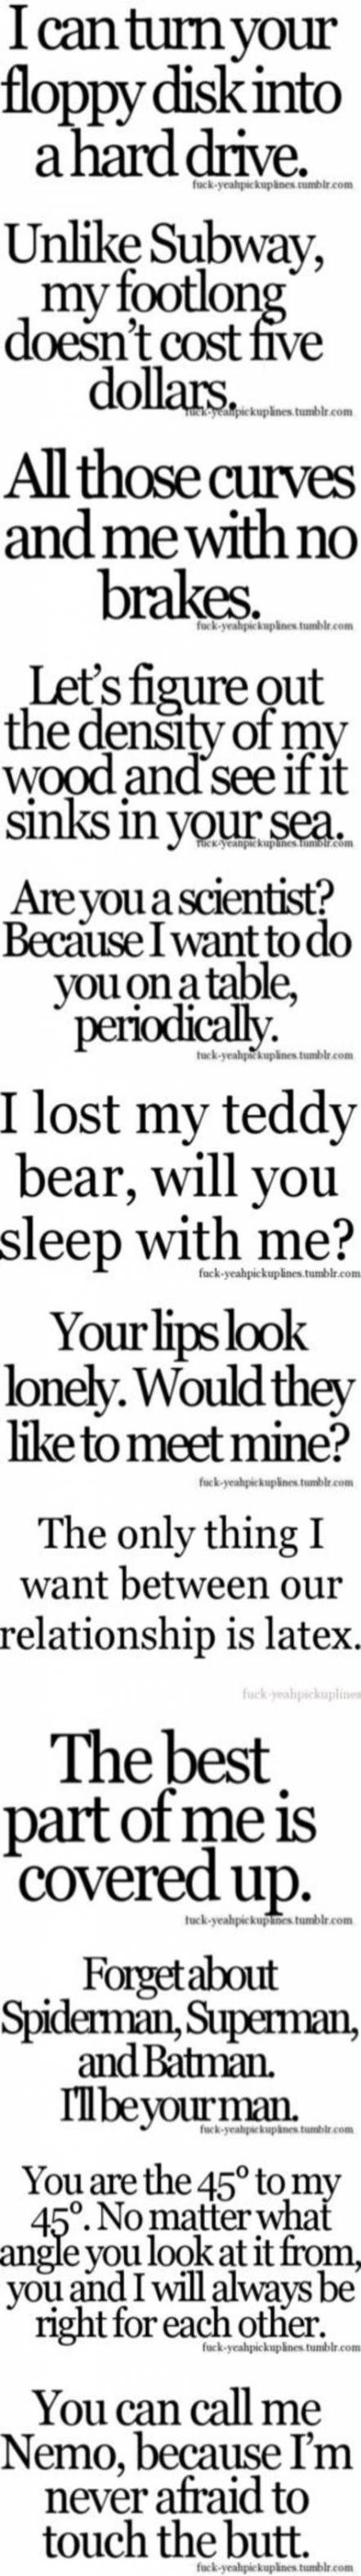 29 ideas quotes for him love funny hilarious #funny #quotes